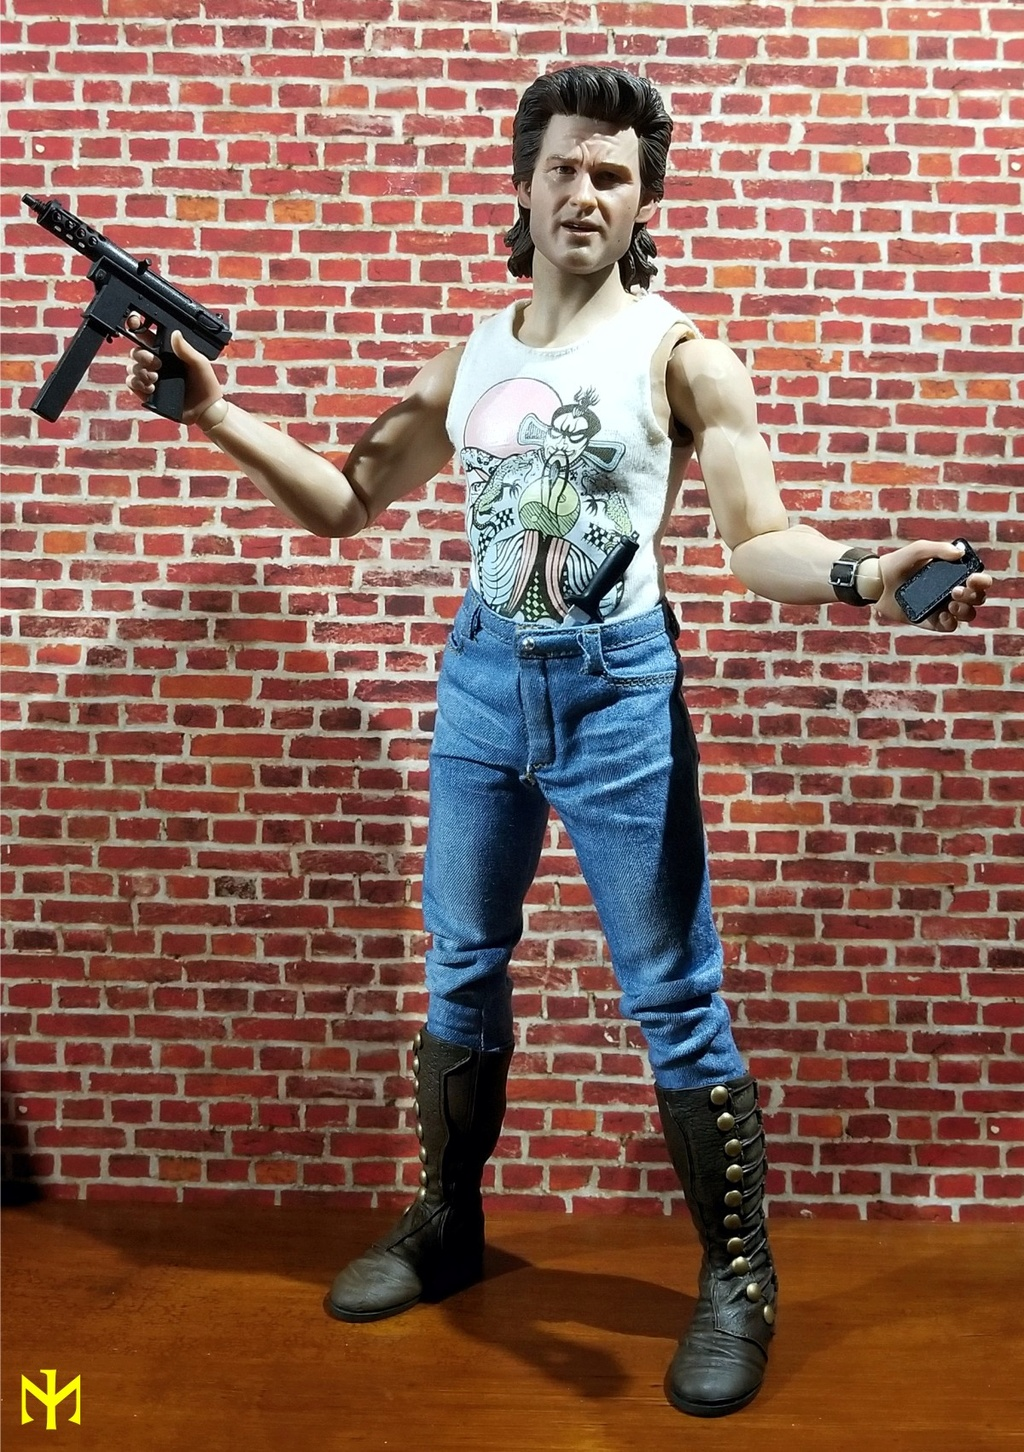 bigtroubleinlittlechina - Sideshow Jack Burton Detailed Review Sscjb010